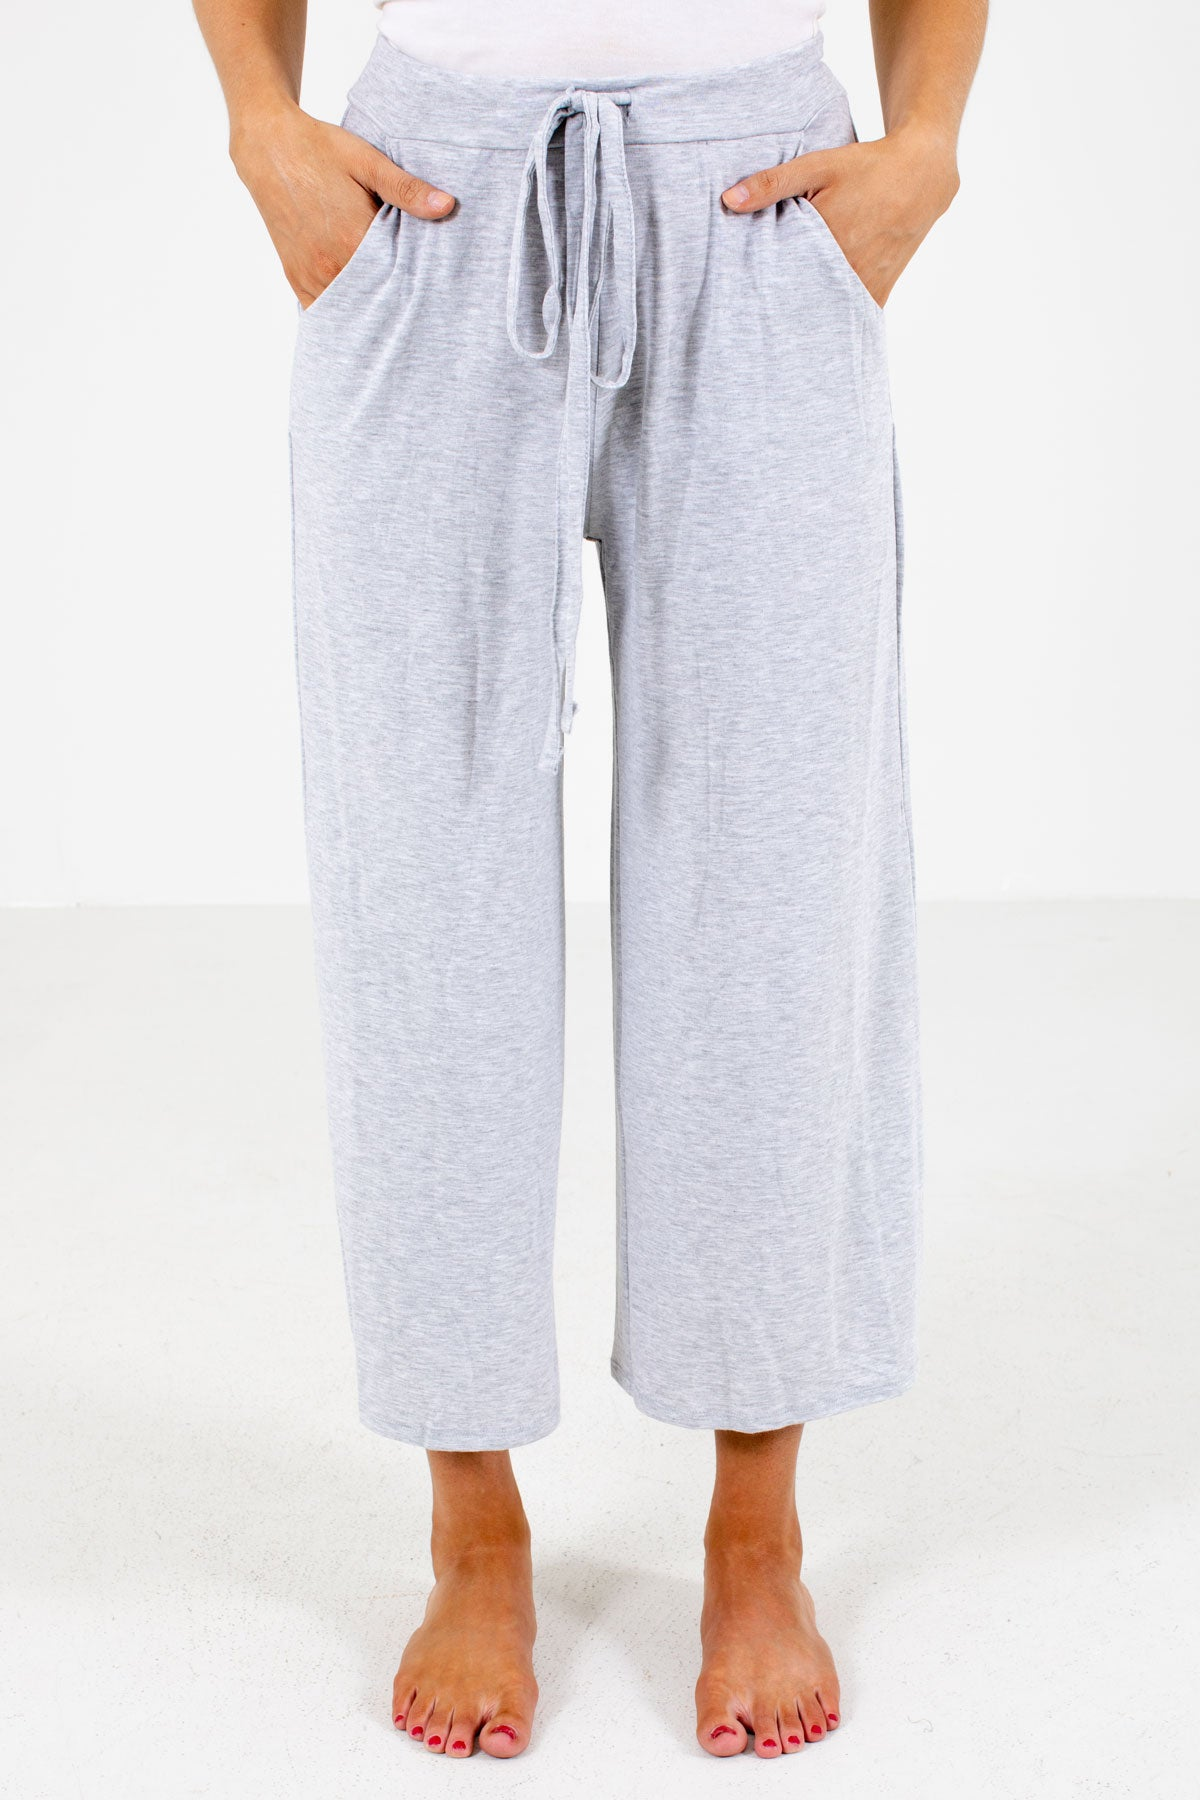 Gray Drawstring Waistband Boutique Pants for Women